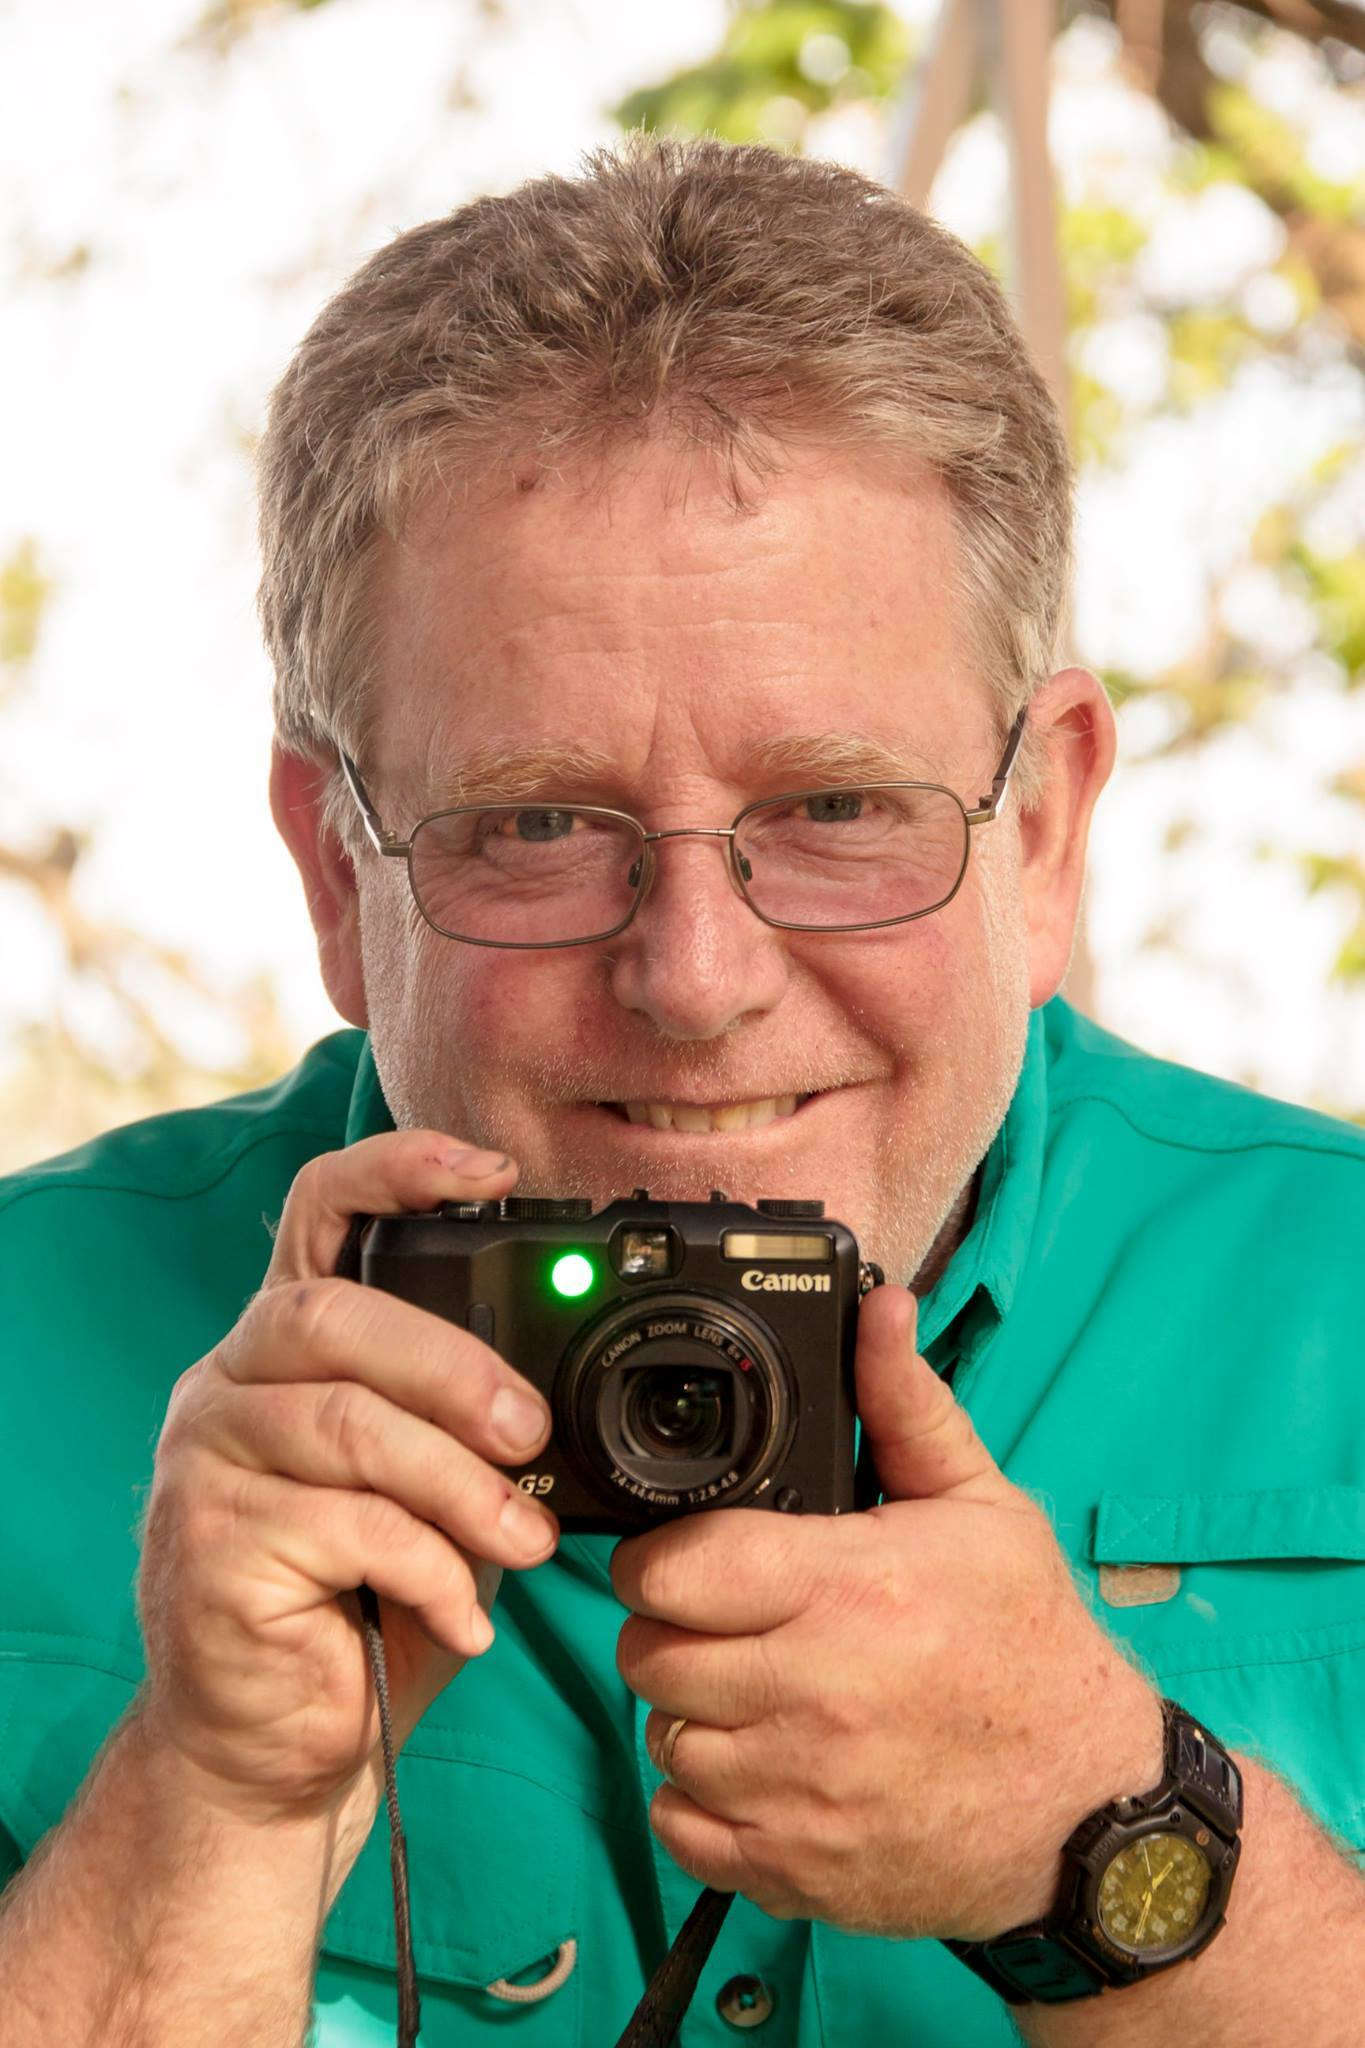 mike-and-camera.jpg#asset:2813